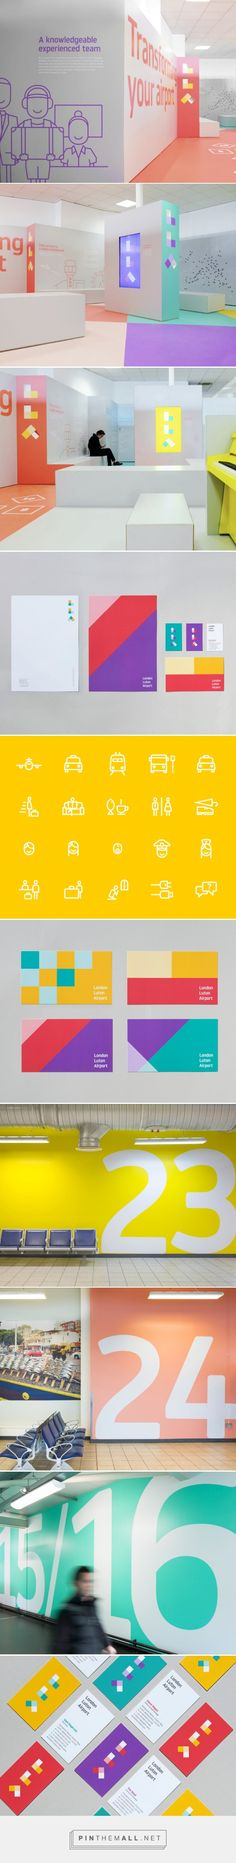 London Luton Airport Branding by Ico Design | Inspiration Grid | Design Inspiration http://theinspirationgrid.com/london-luton-airport-branding-by-ico-design/